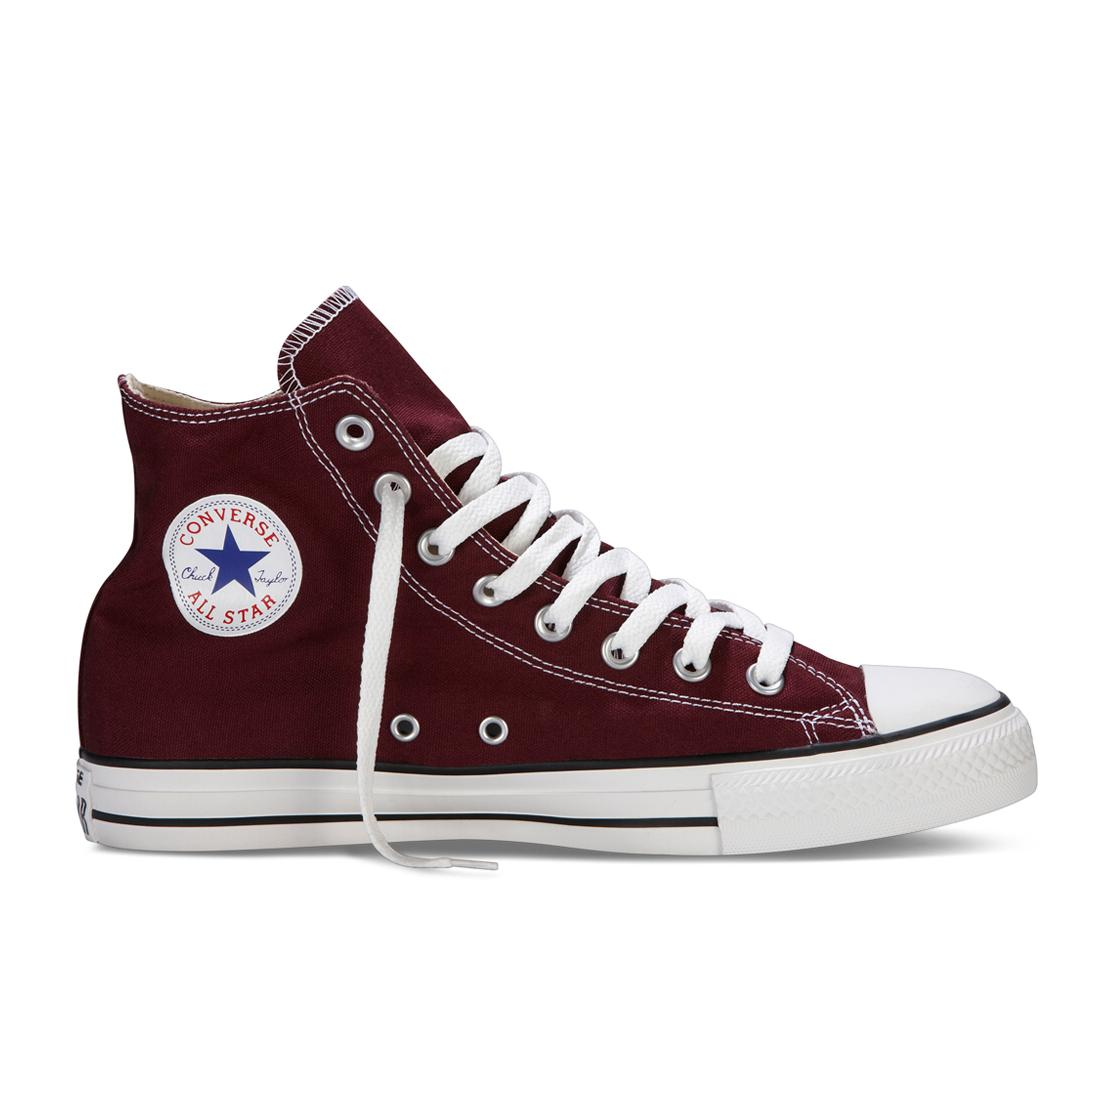 converse chuck taylor all star hi schuhe high top sneaker. Black Bedroom Furniture Sets. Home Design Ideas